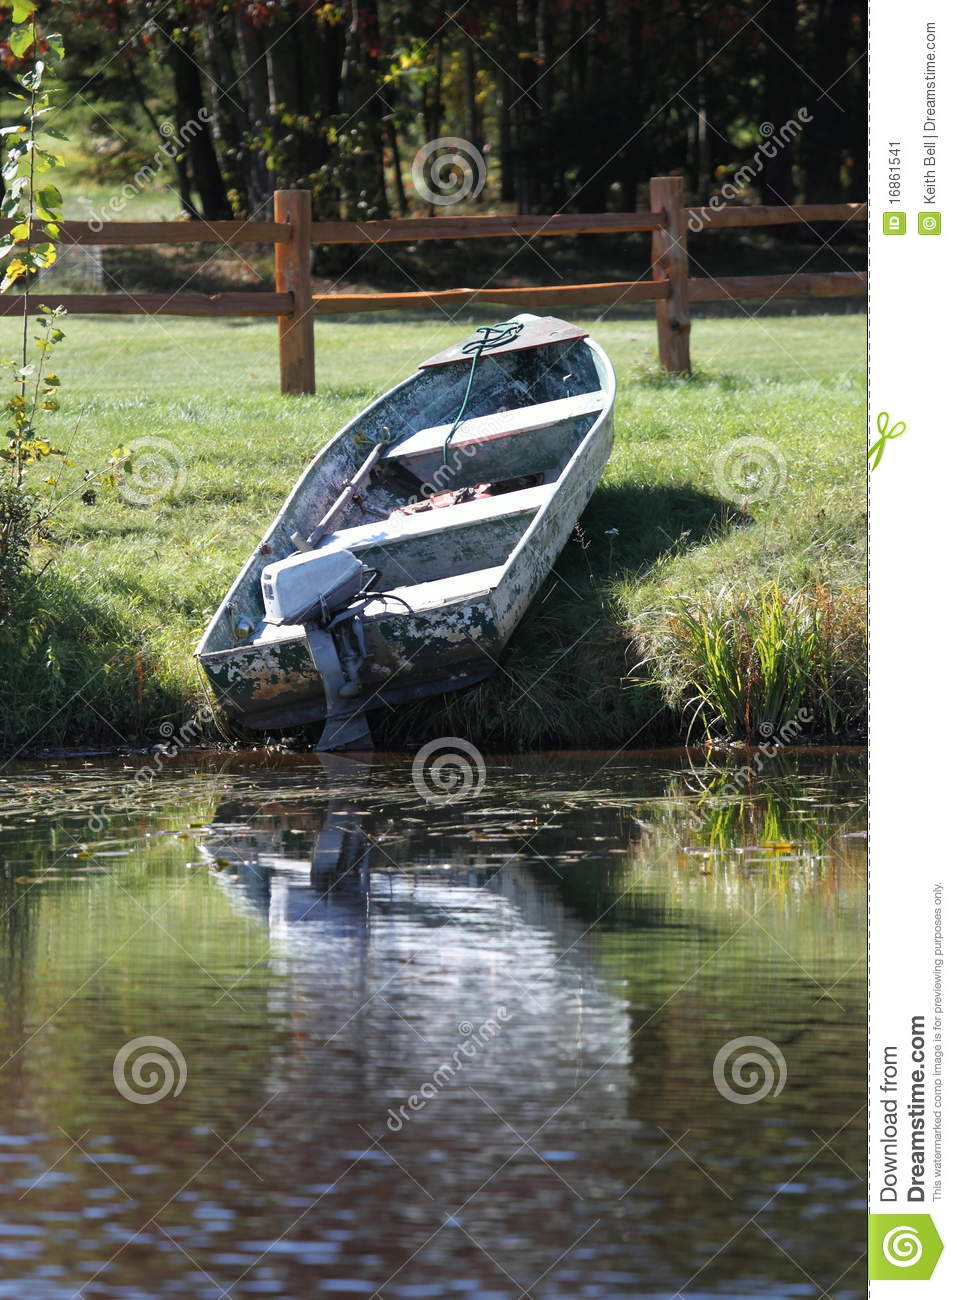 An Old Boat And Motor On The Shore Of A Lake Stock Image